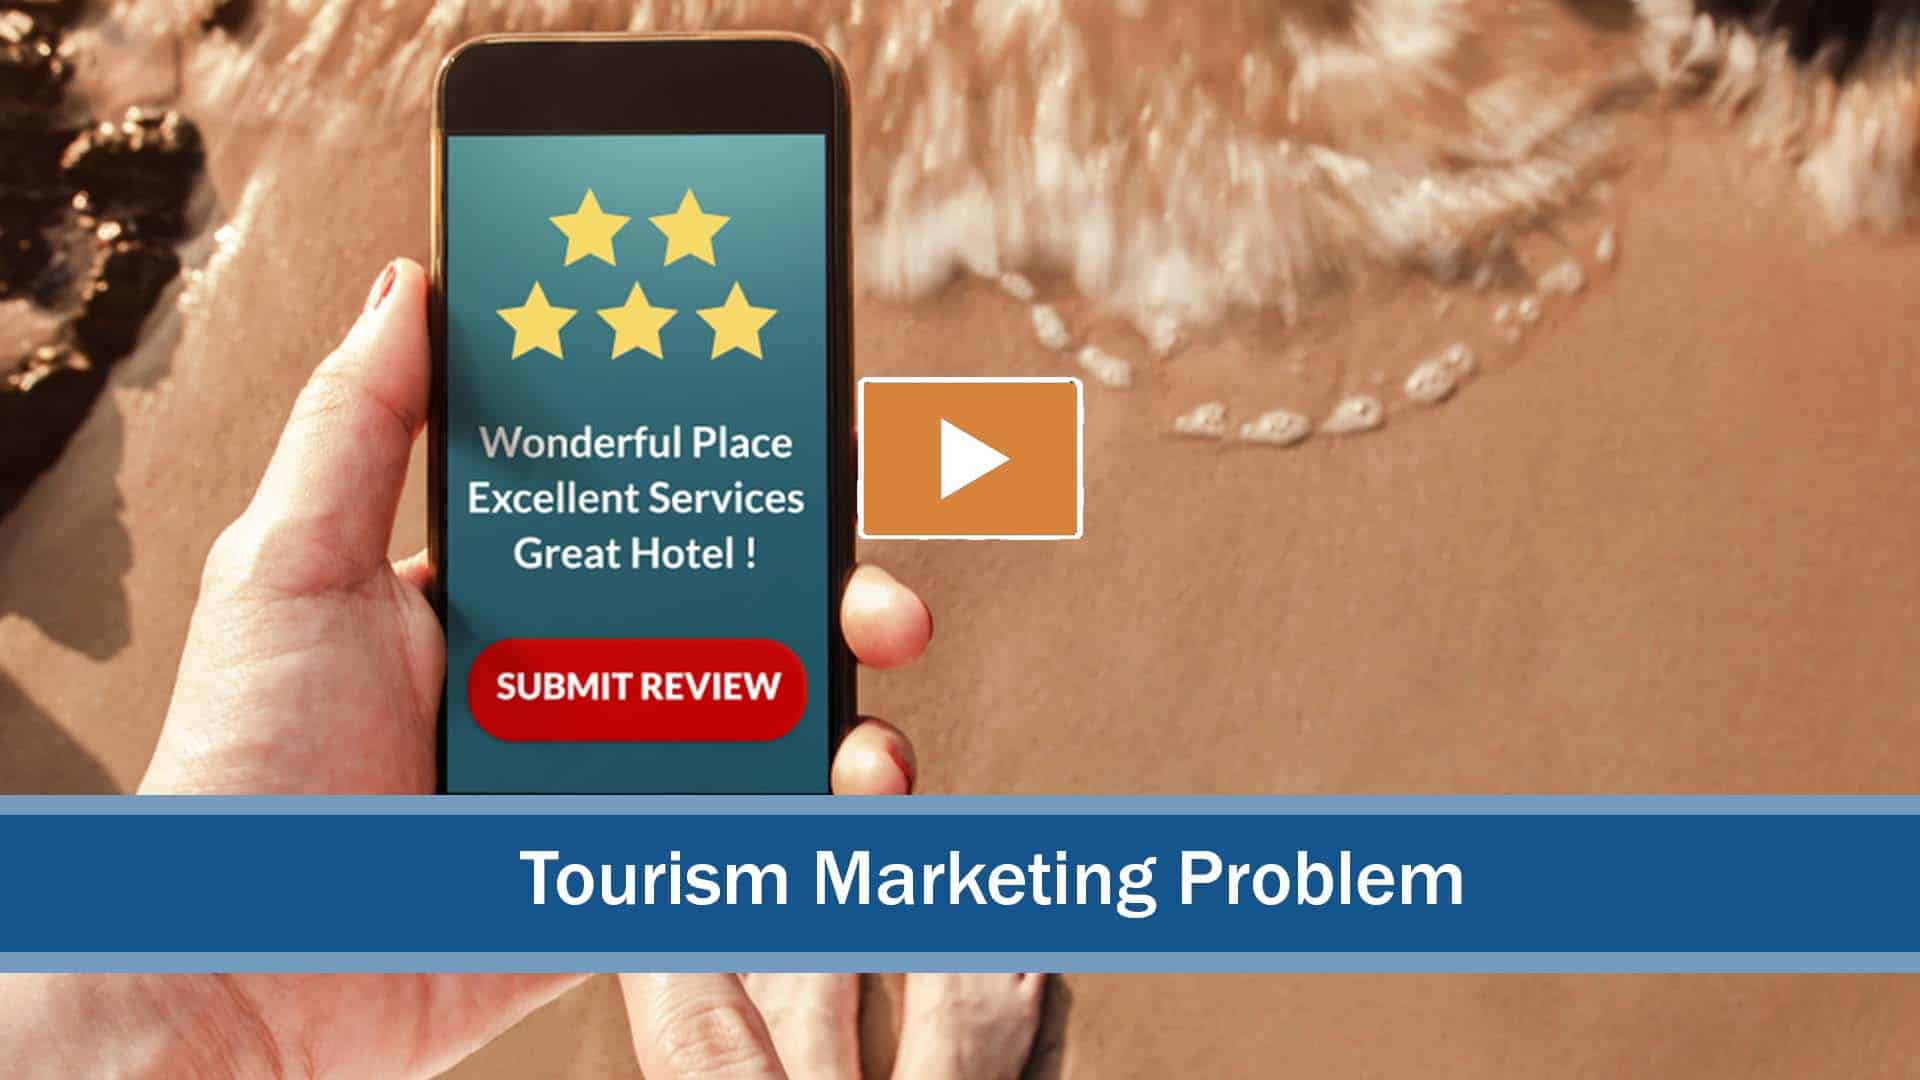 Guest reviews - how to manage them effectively